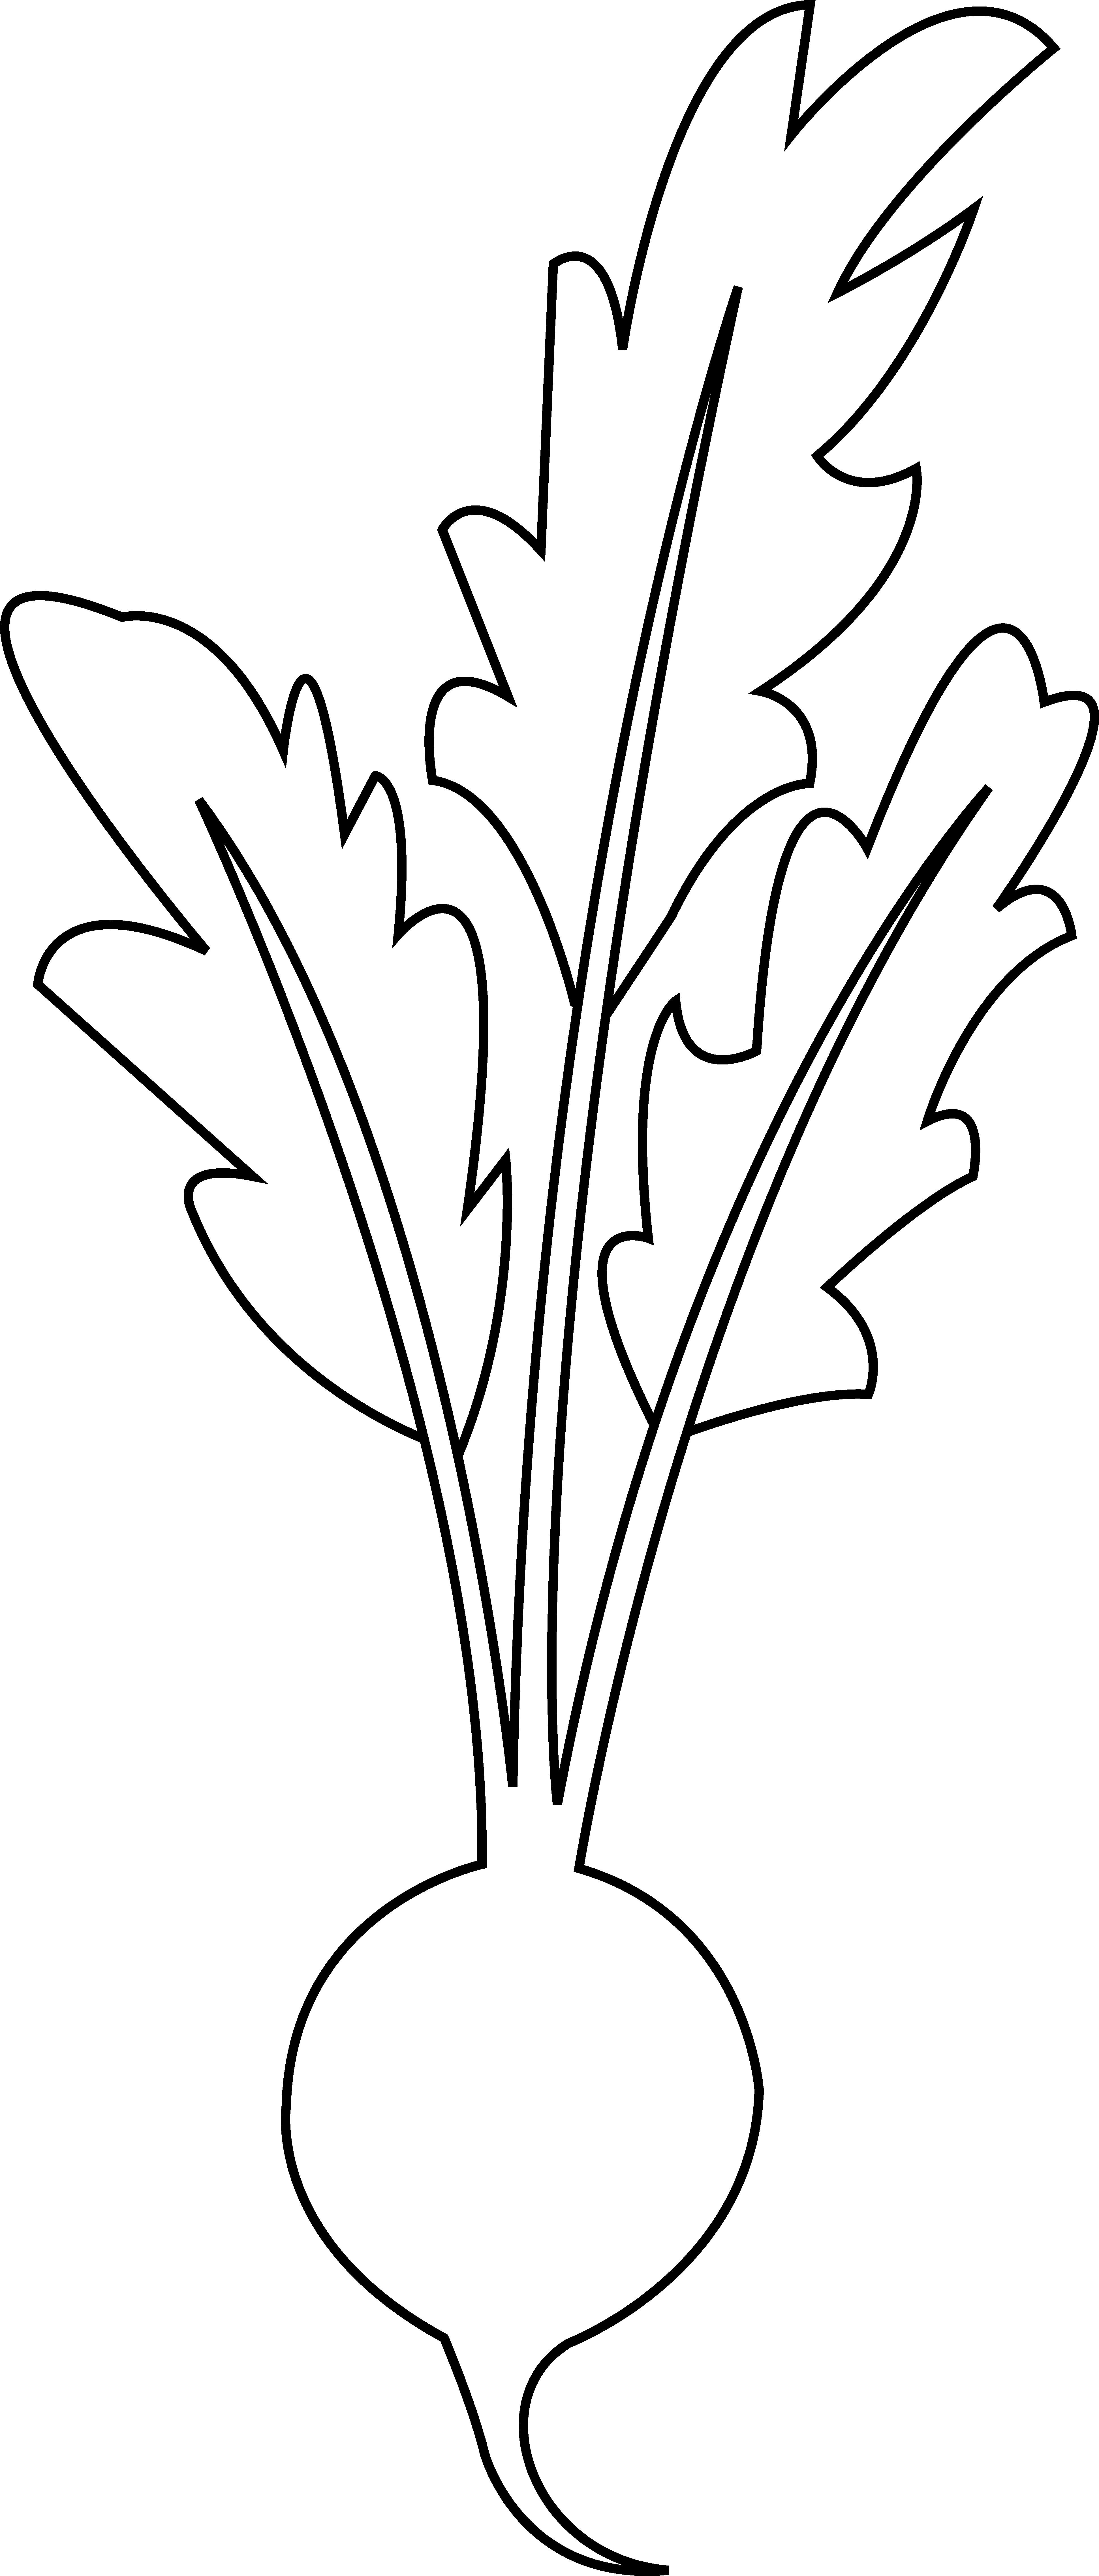 jpg black and white library Beet line art free. Beets drawing music